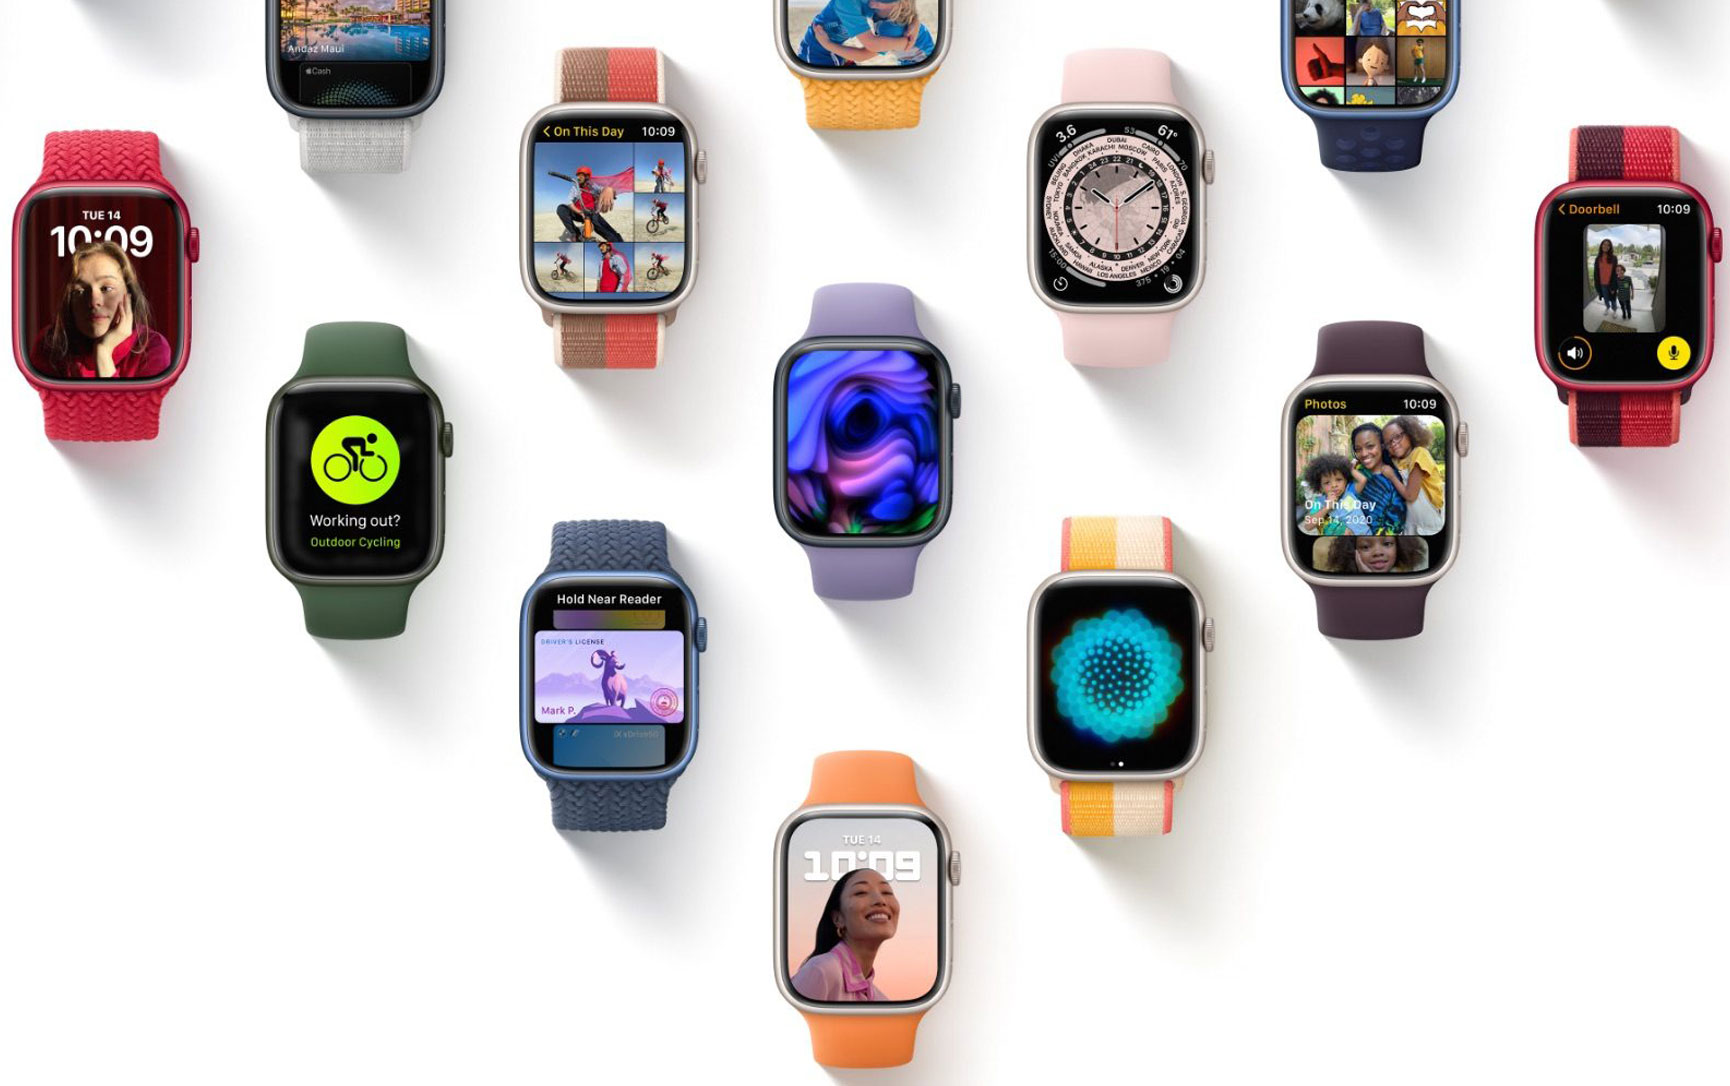 watchOS 8 for Apple Watch brings Health Sharing to familiesdoctors, Always-On display upgrade, Mindfulness app, new watch faces, more